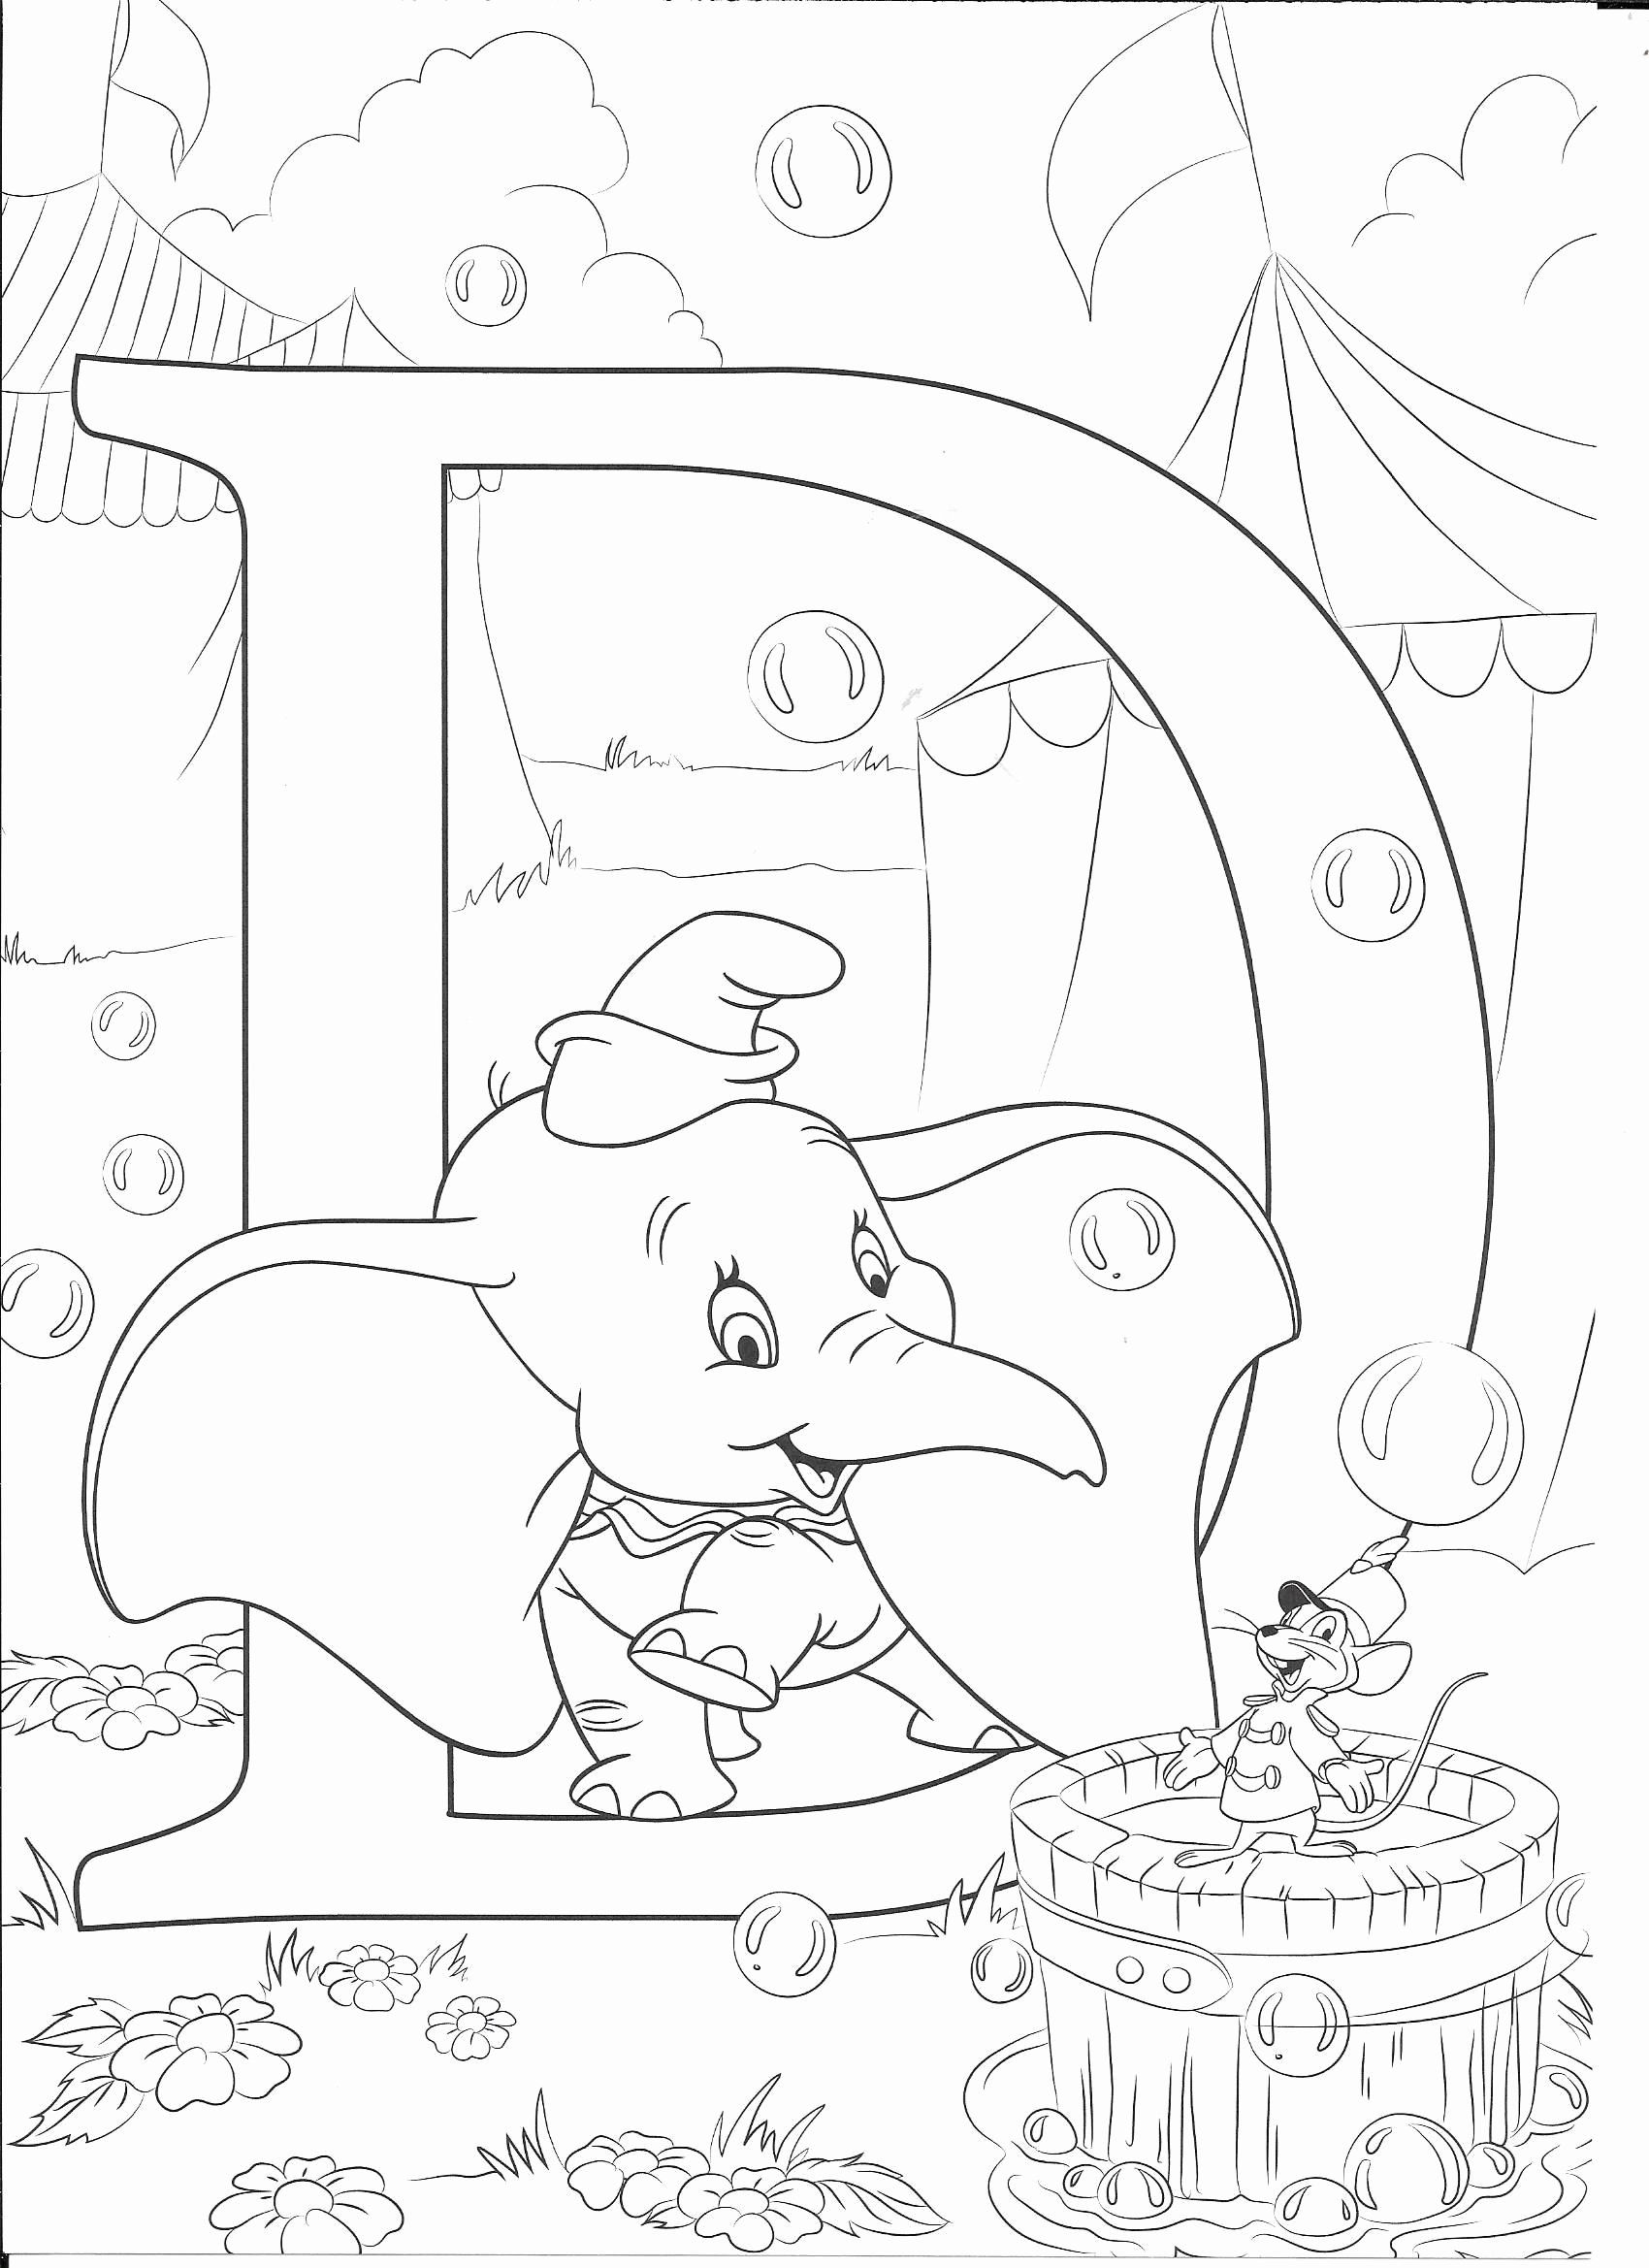 Disney Summer Coloring Pages Best Of Coloring Pages Dumbo Color Disney Coloring Plat In 2020 Abc Coloring Pages Disney Coloring Sheets Disney Coloring Pages Printables